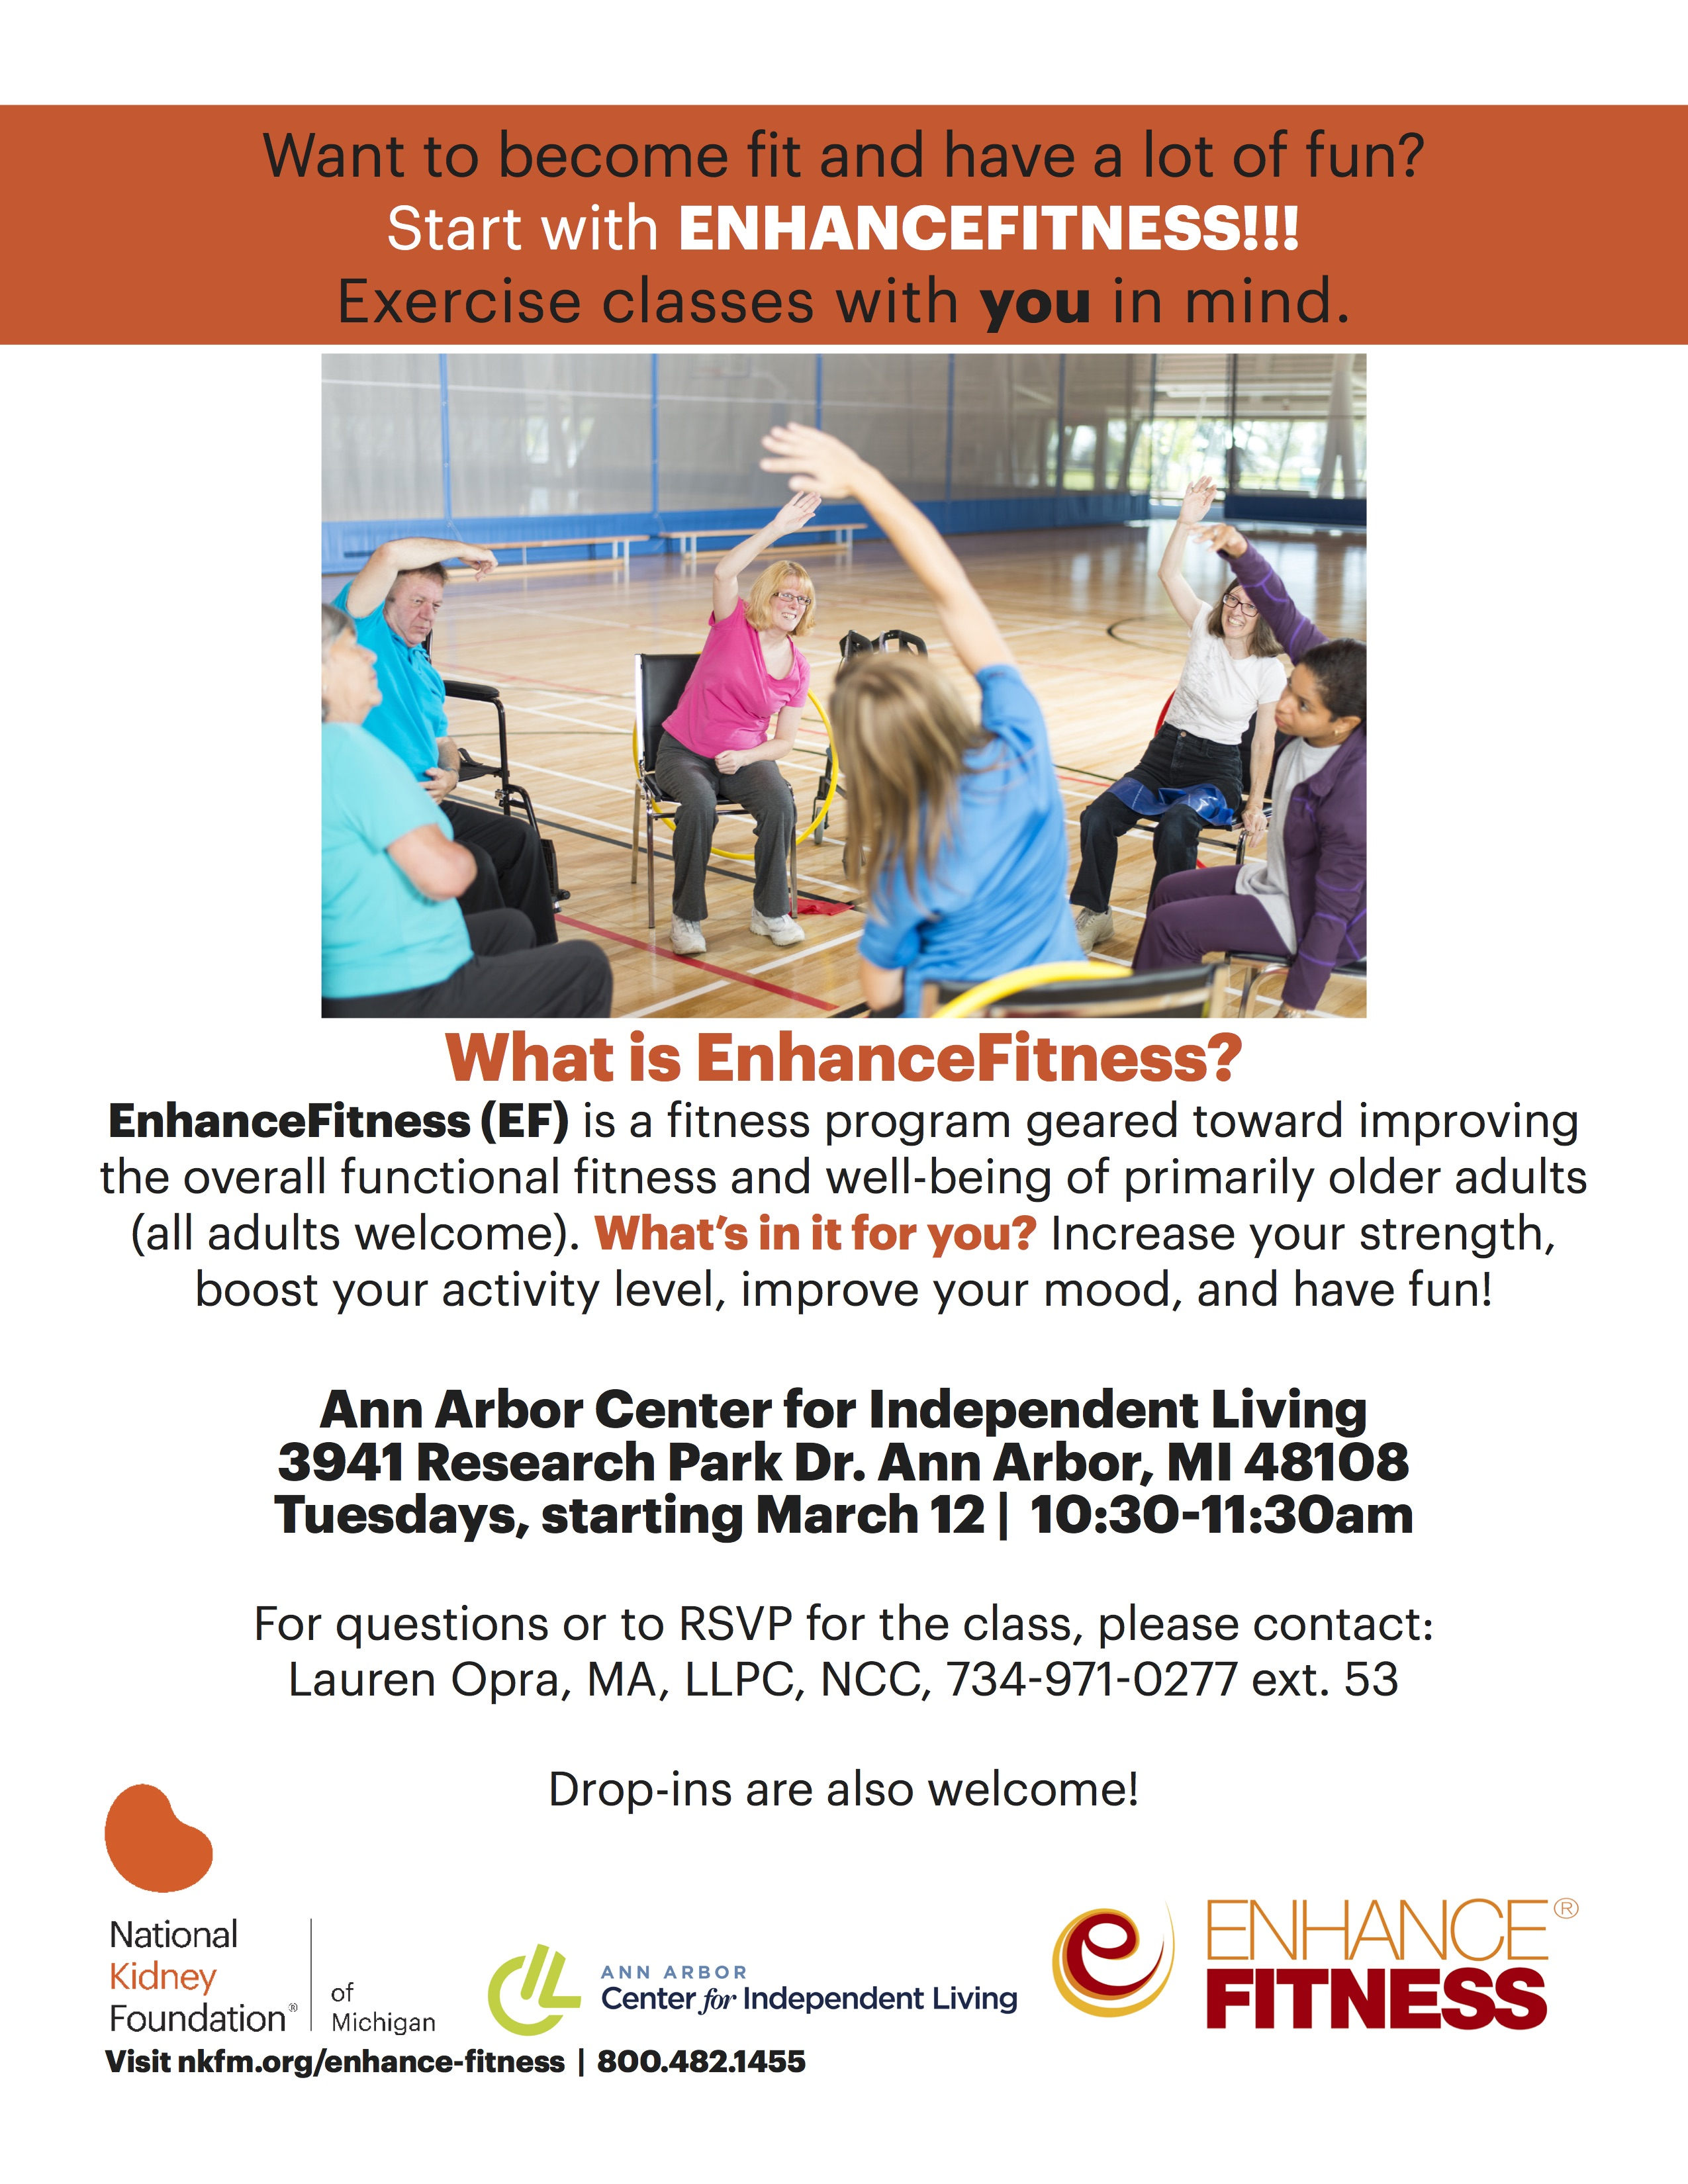 Exercise Class Starting March 12!